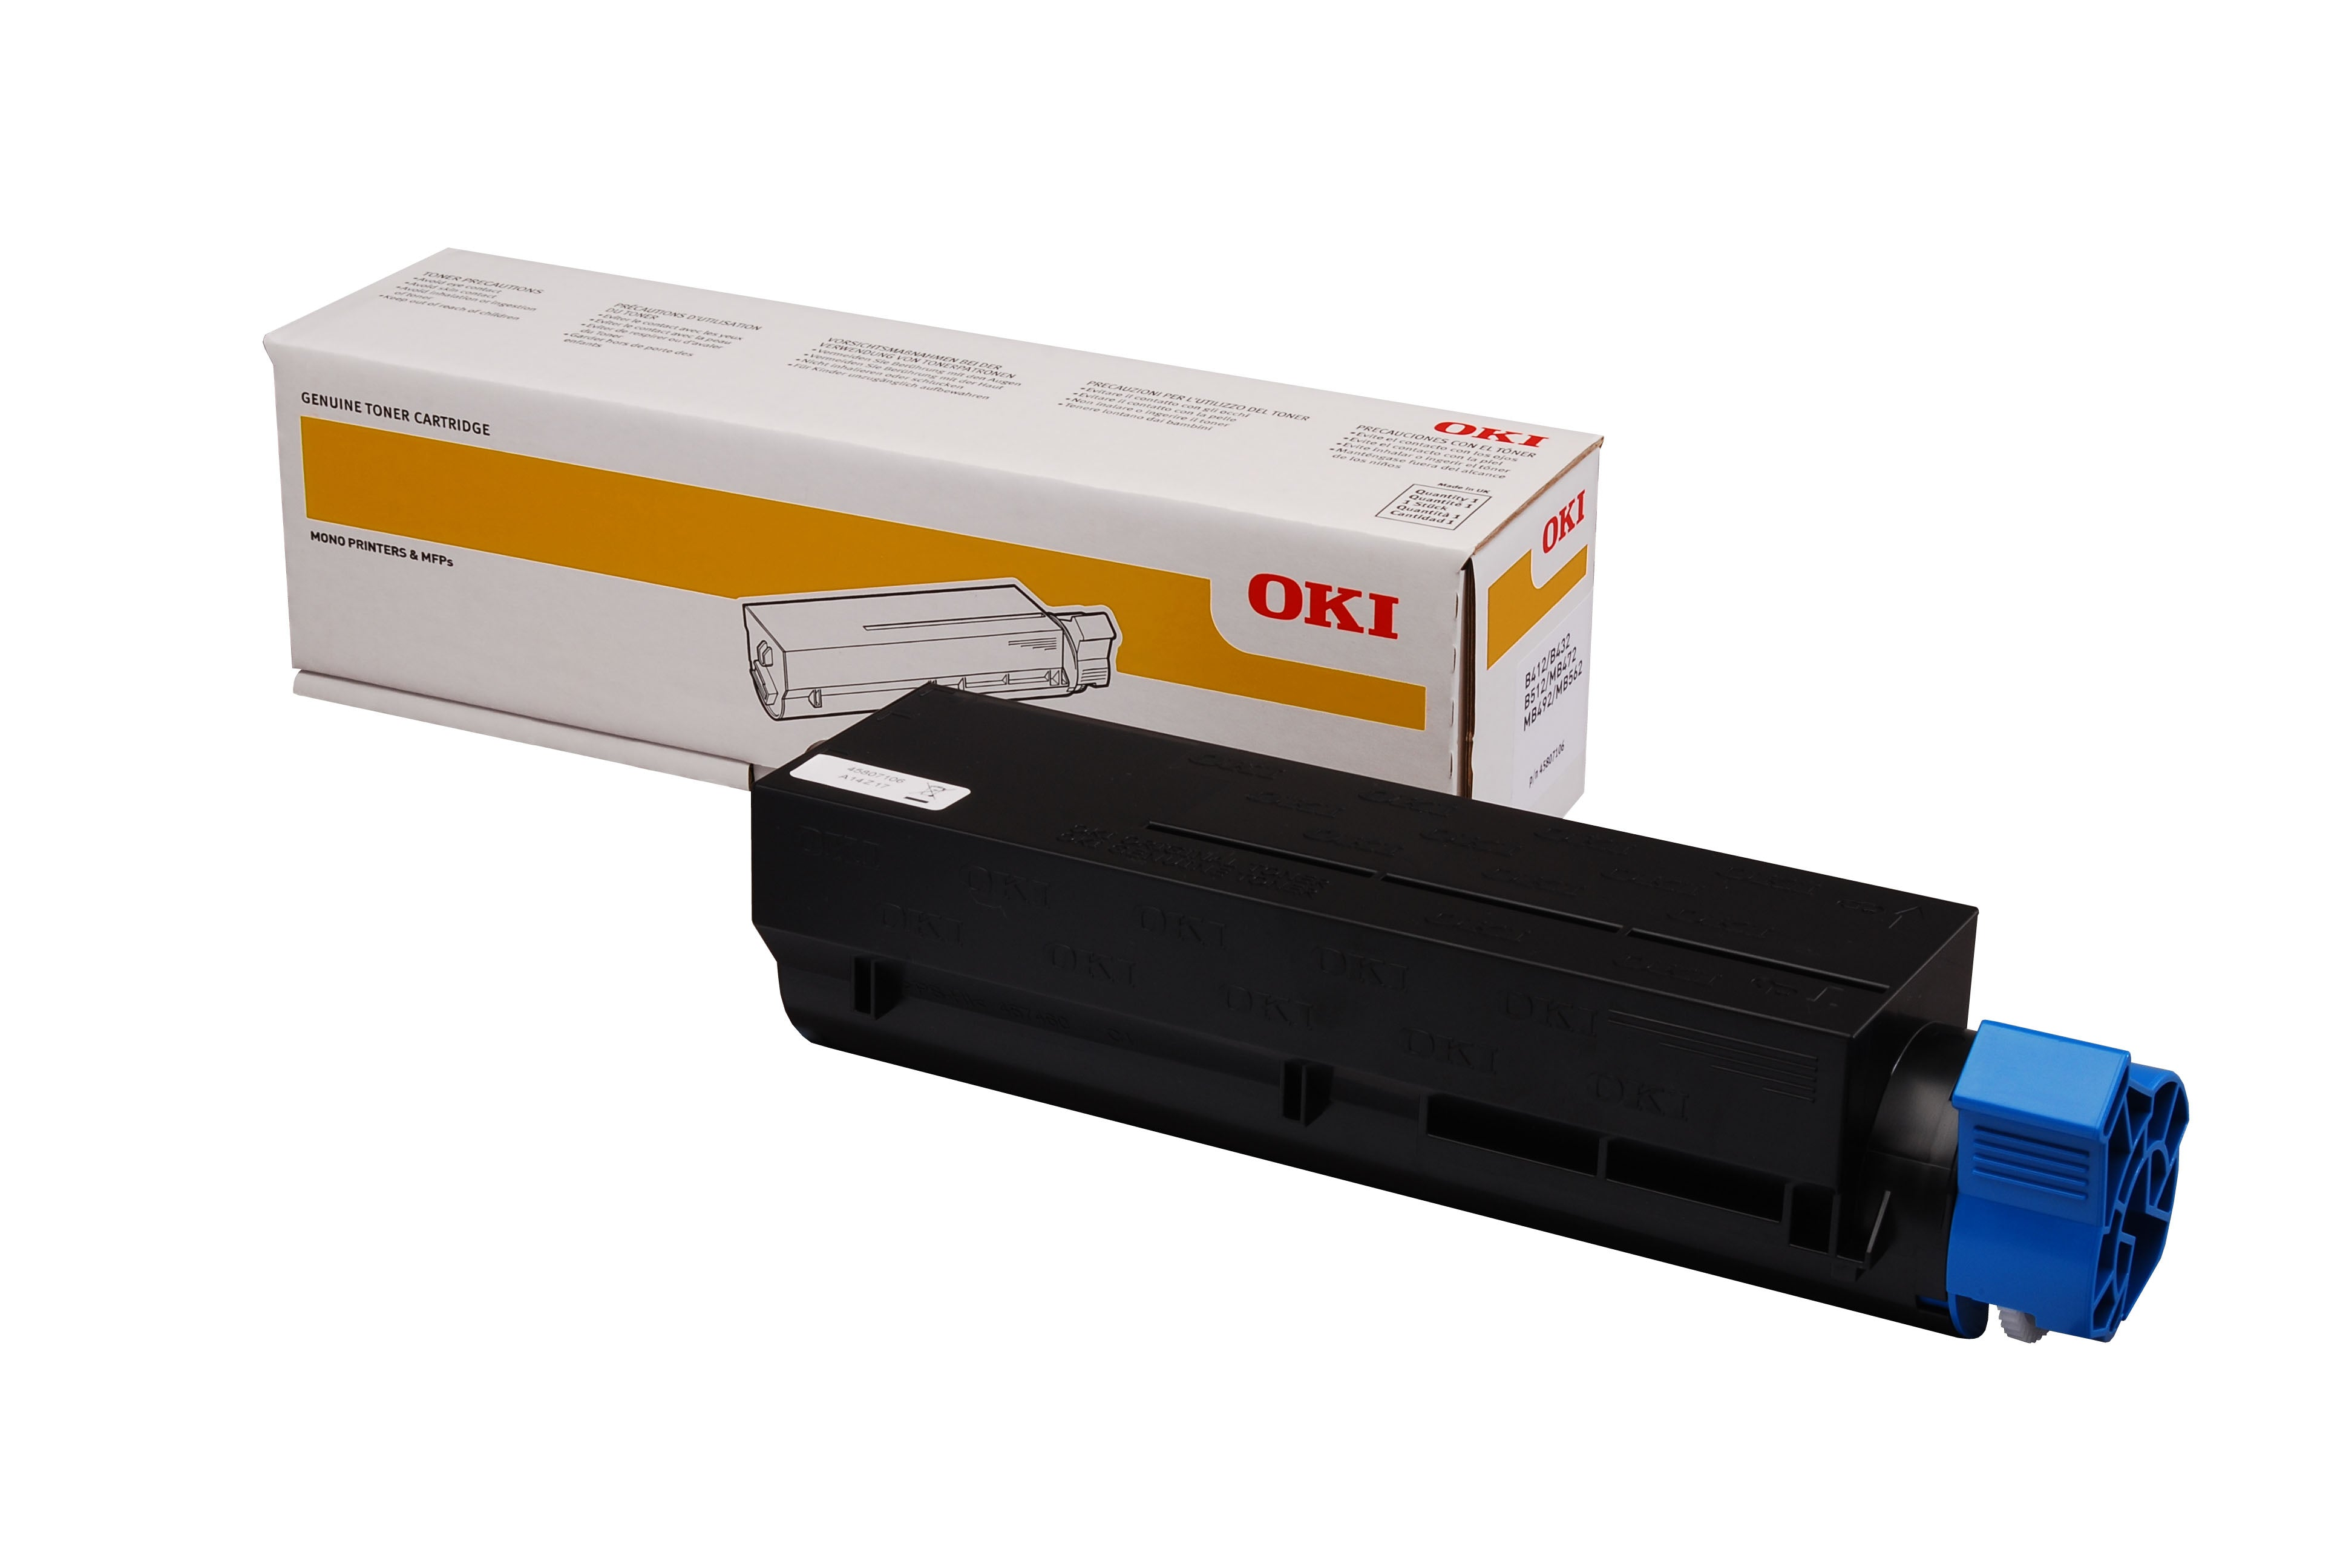 OKI MB472DNW Black Toner (7,000 Pages) 45807107